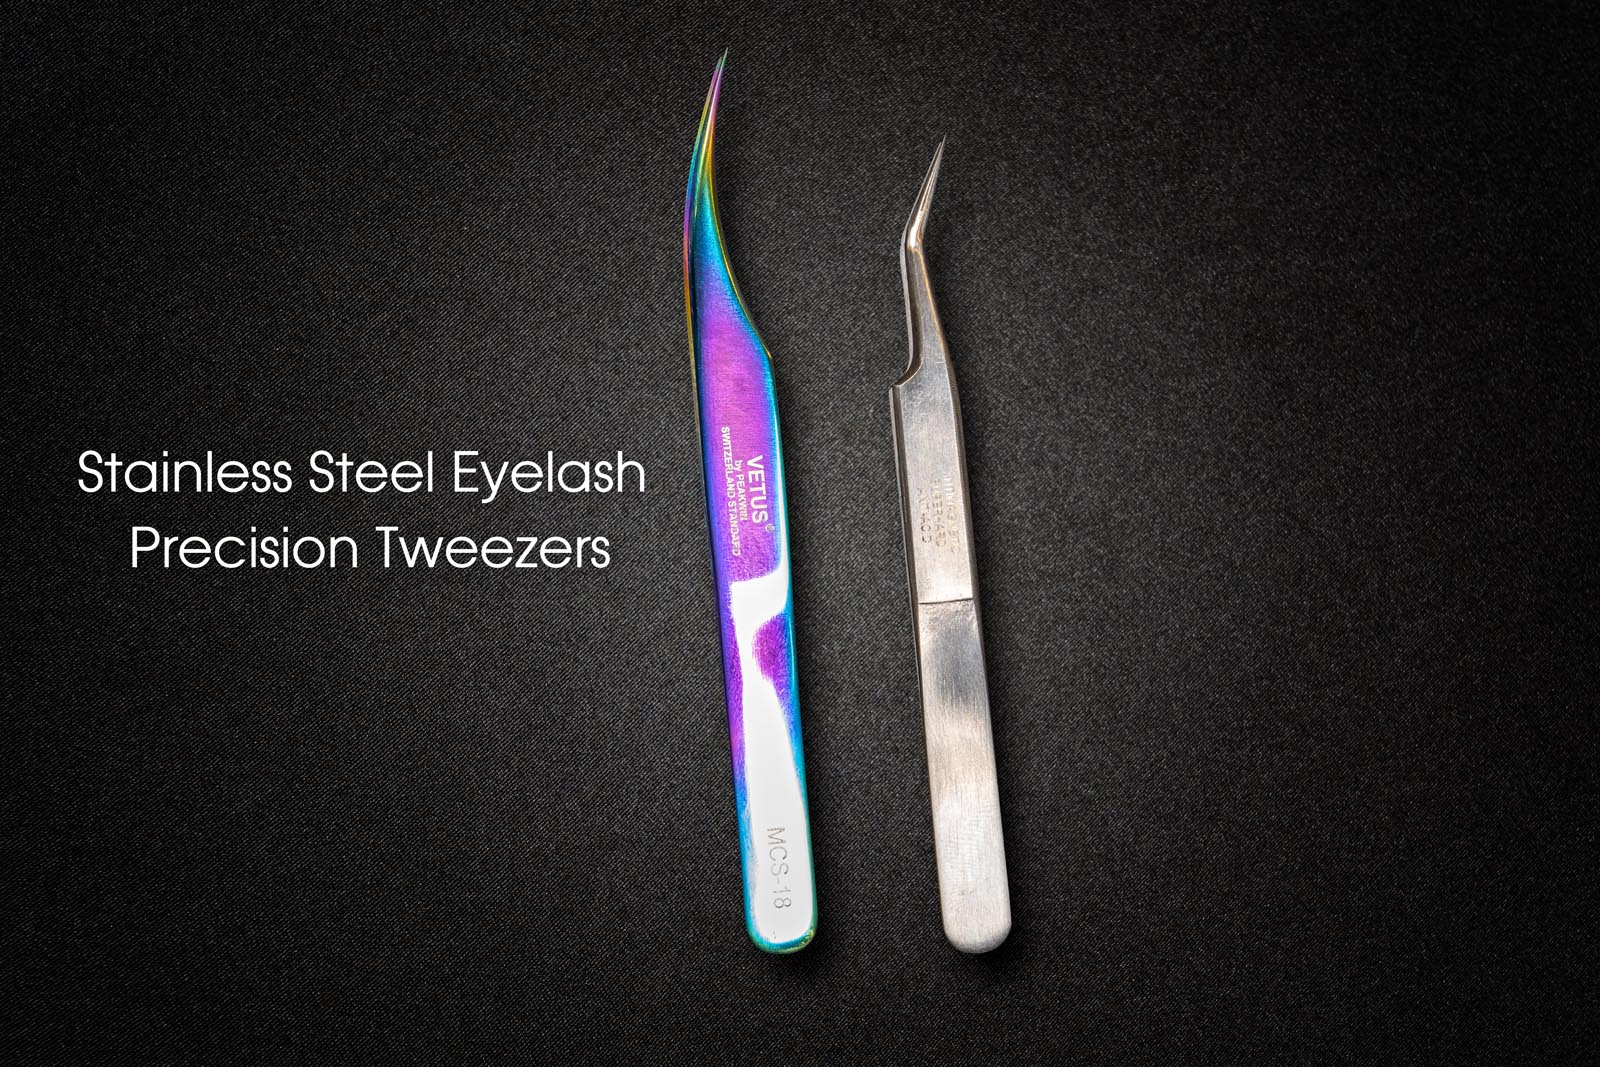 12 Eyelash Stainless Steel Tweezer.jpg